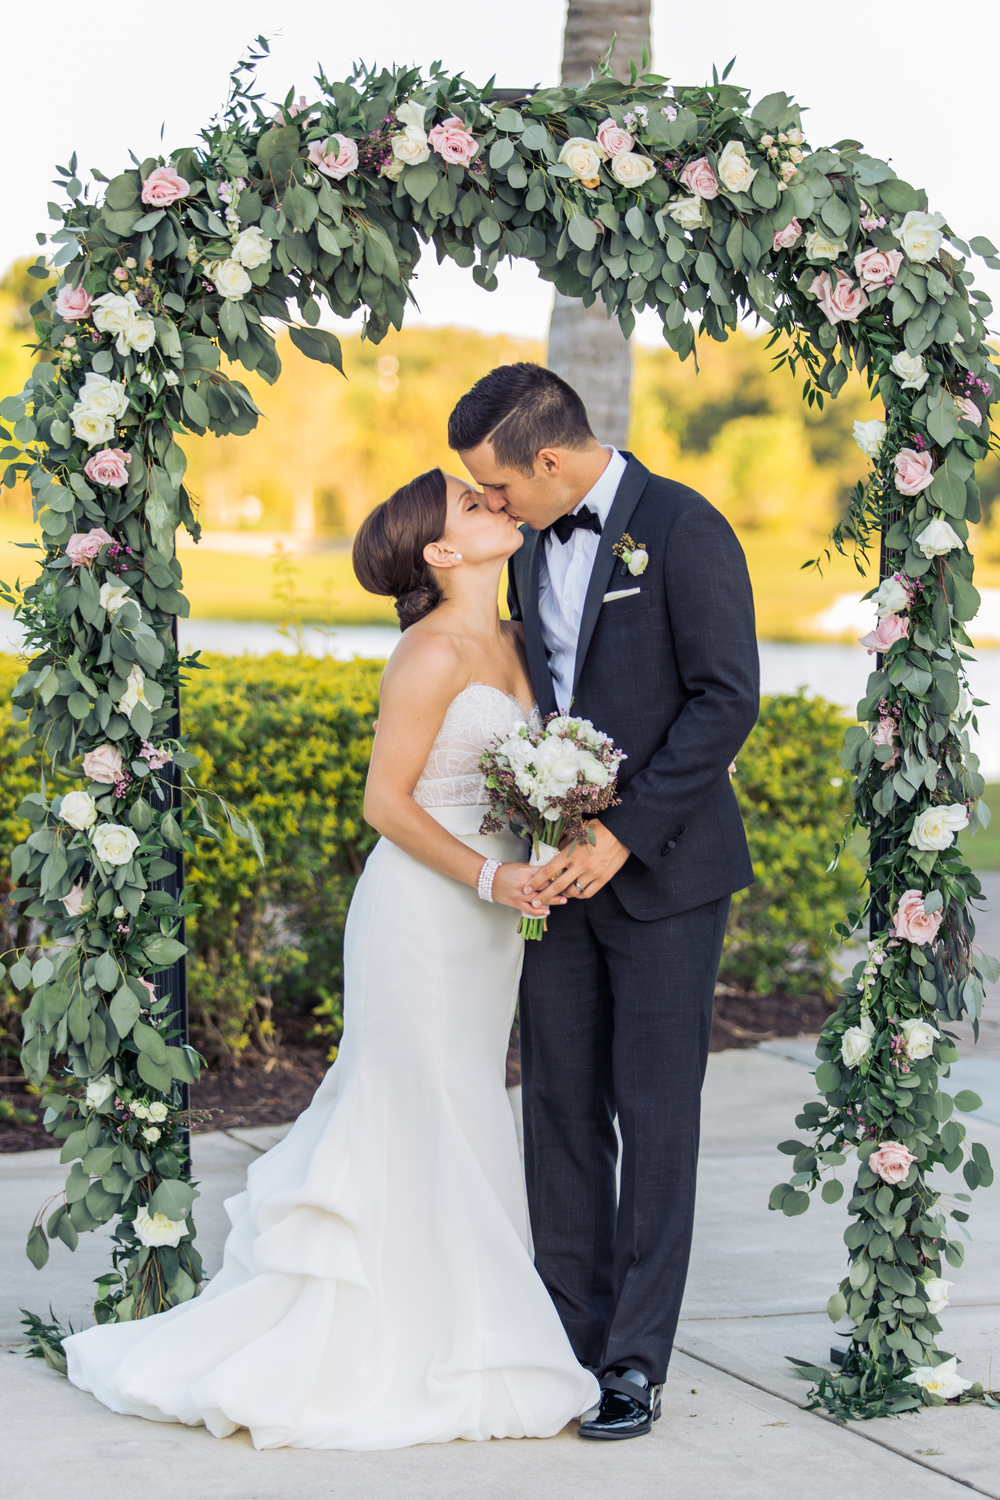 Floral wedding arch & bridal bouquet by In Bloom Florist // Rosen Shingle Creek, Orlando, Florida